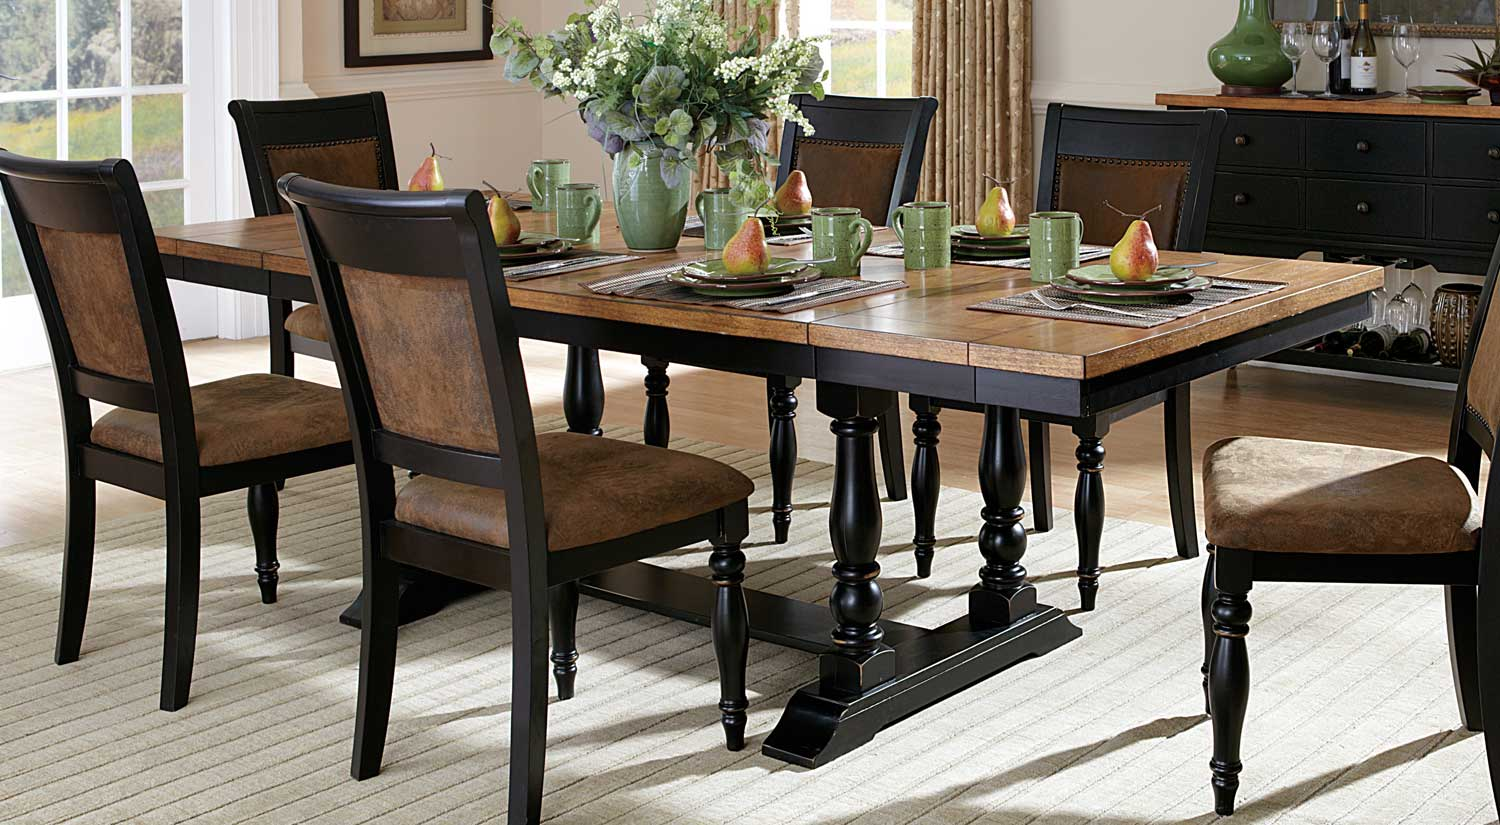 Dining Table With Two End Leaves Acacia Distressed Black 40 X 72